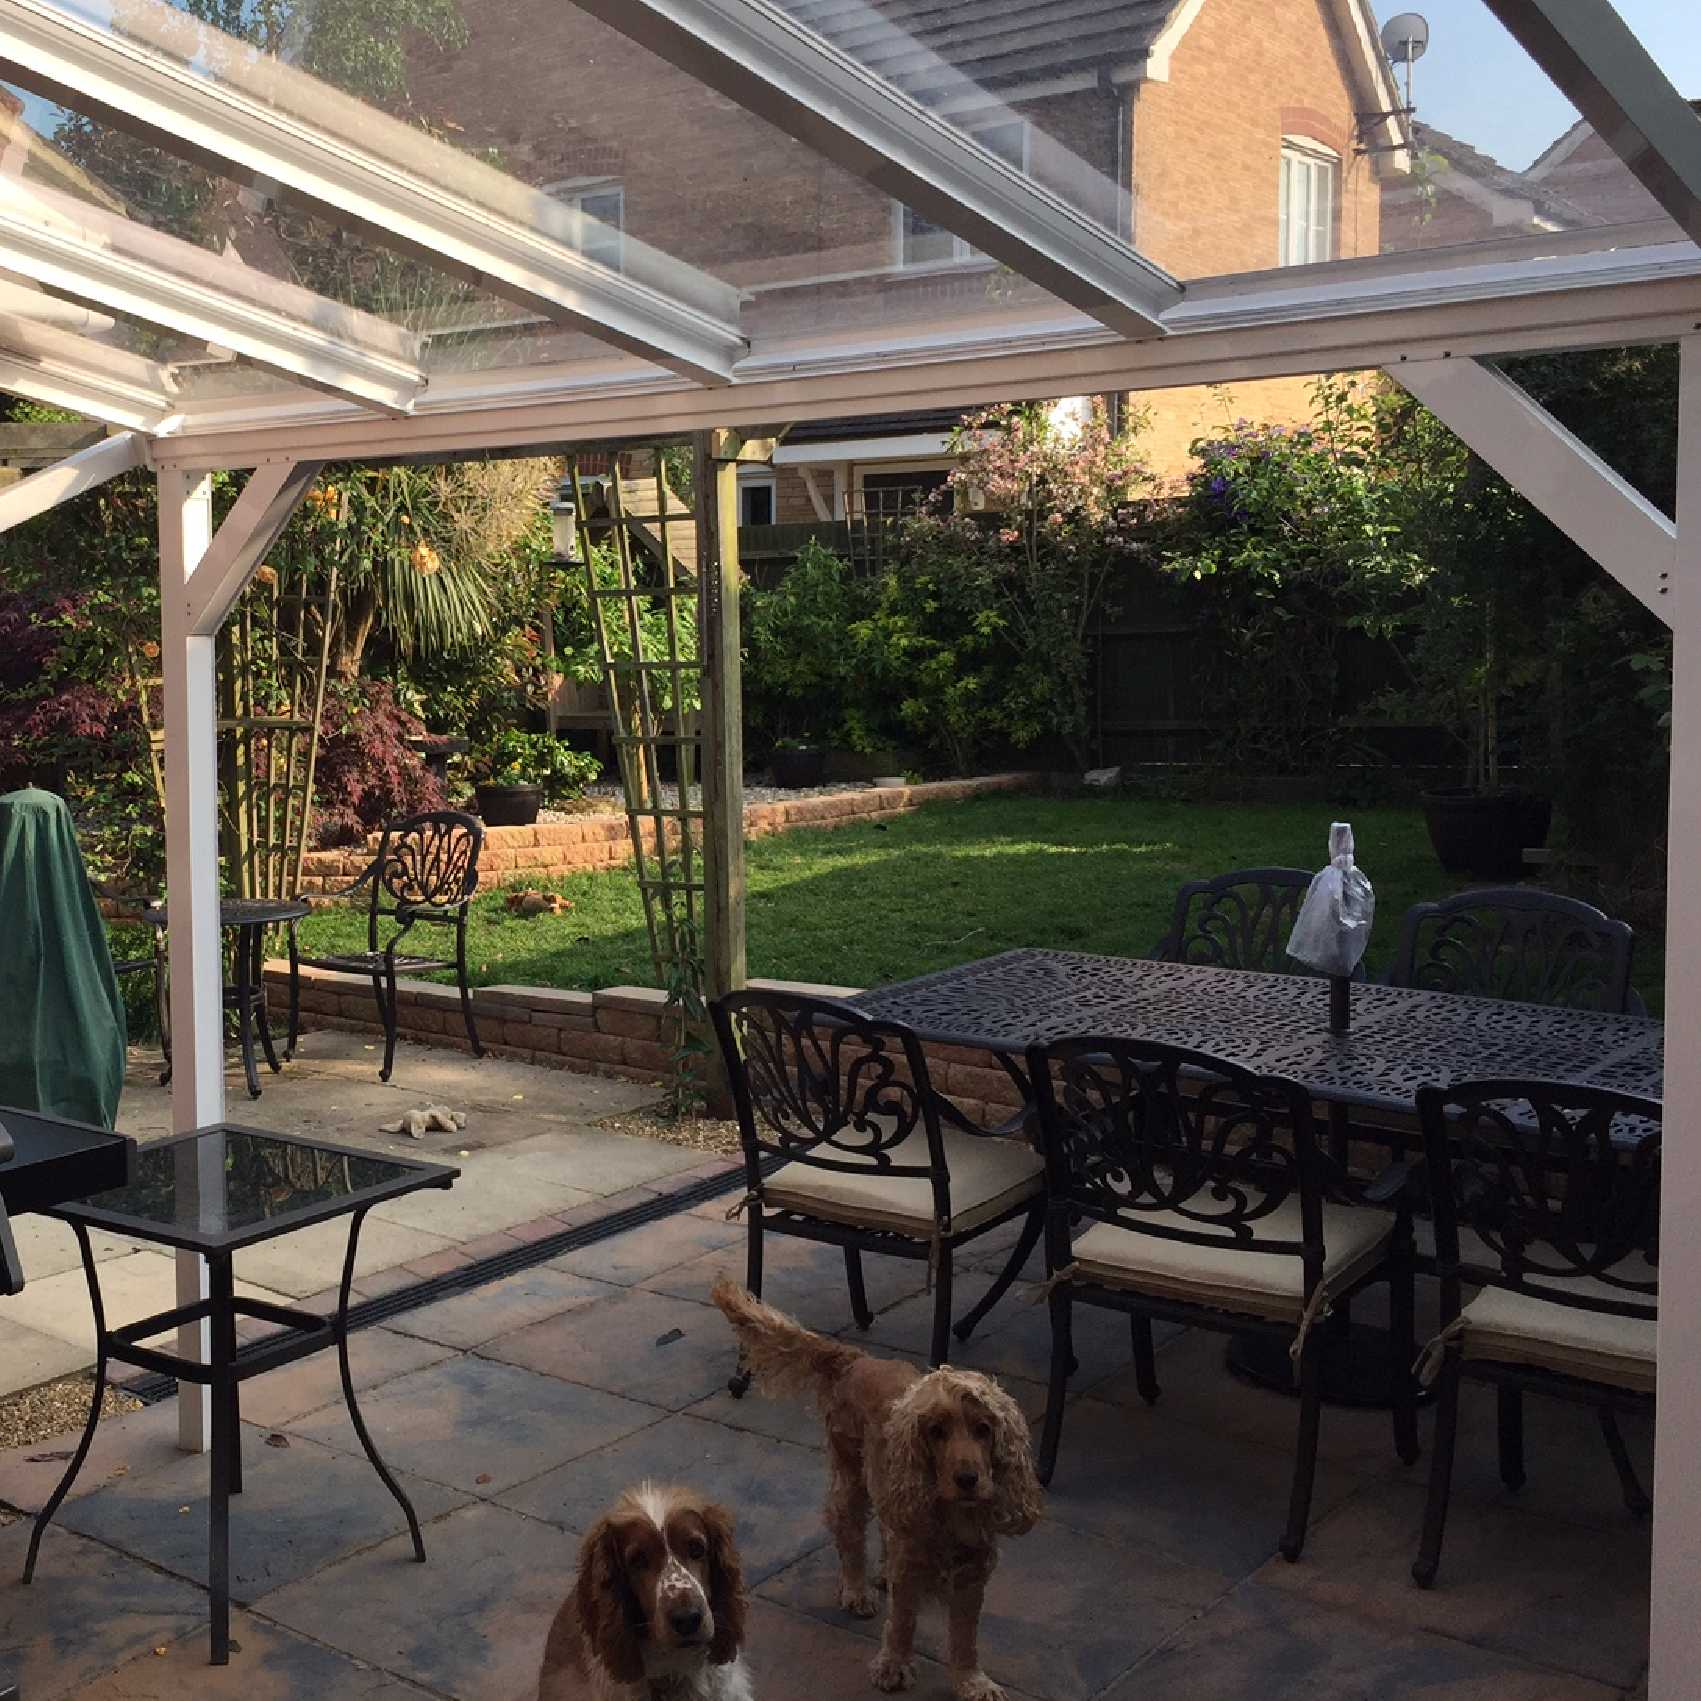 Affordable Omega Smart White Lean-To Canopy UNGLAZED for 6mm Glazing - 4.2m (W) x 2.5m (P), (3) Supporting Posts